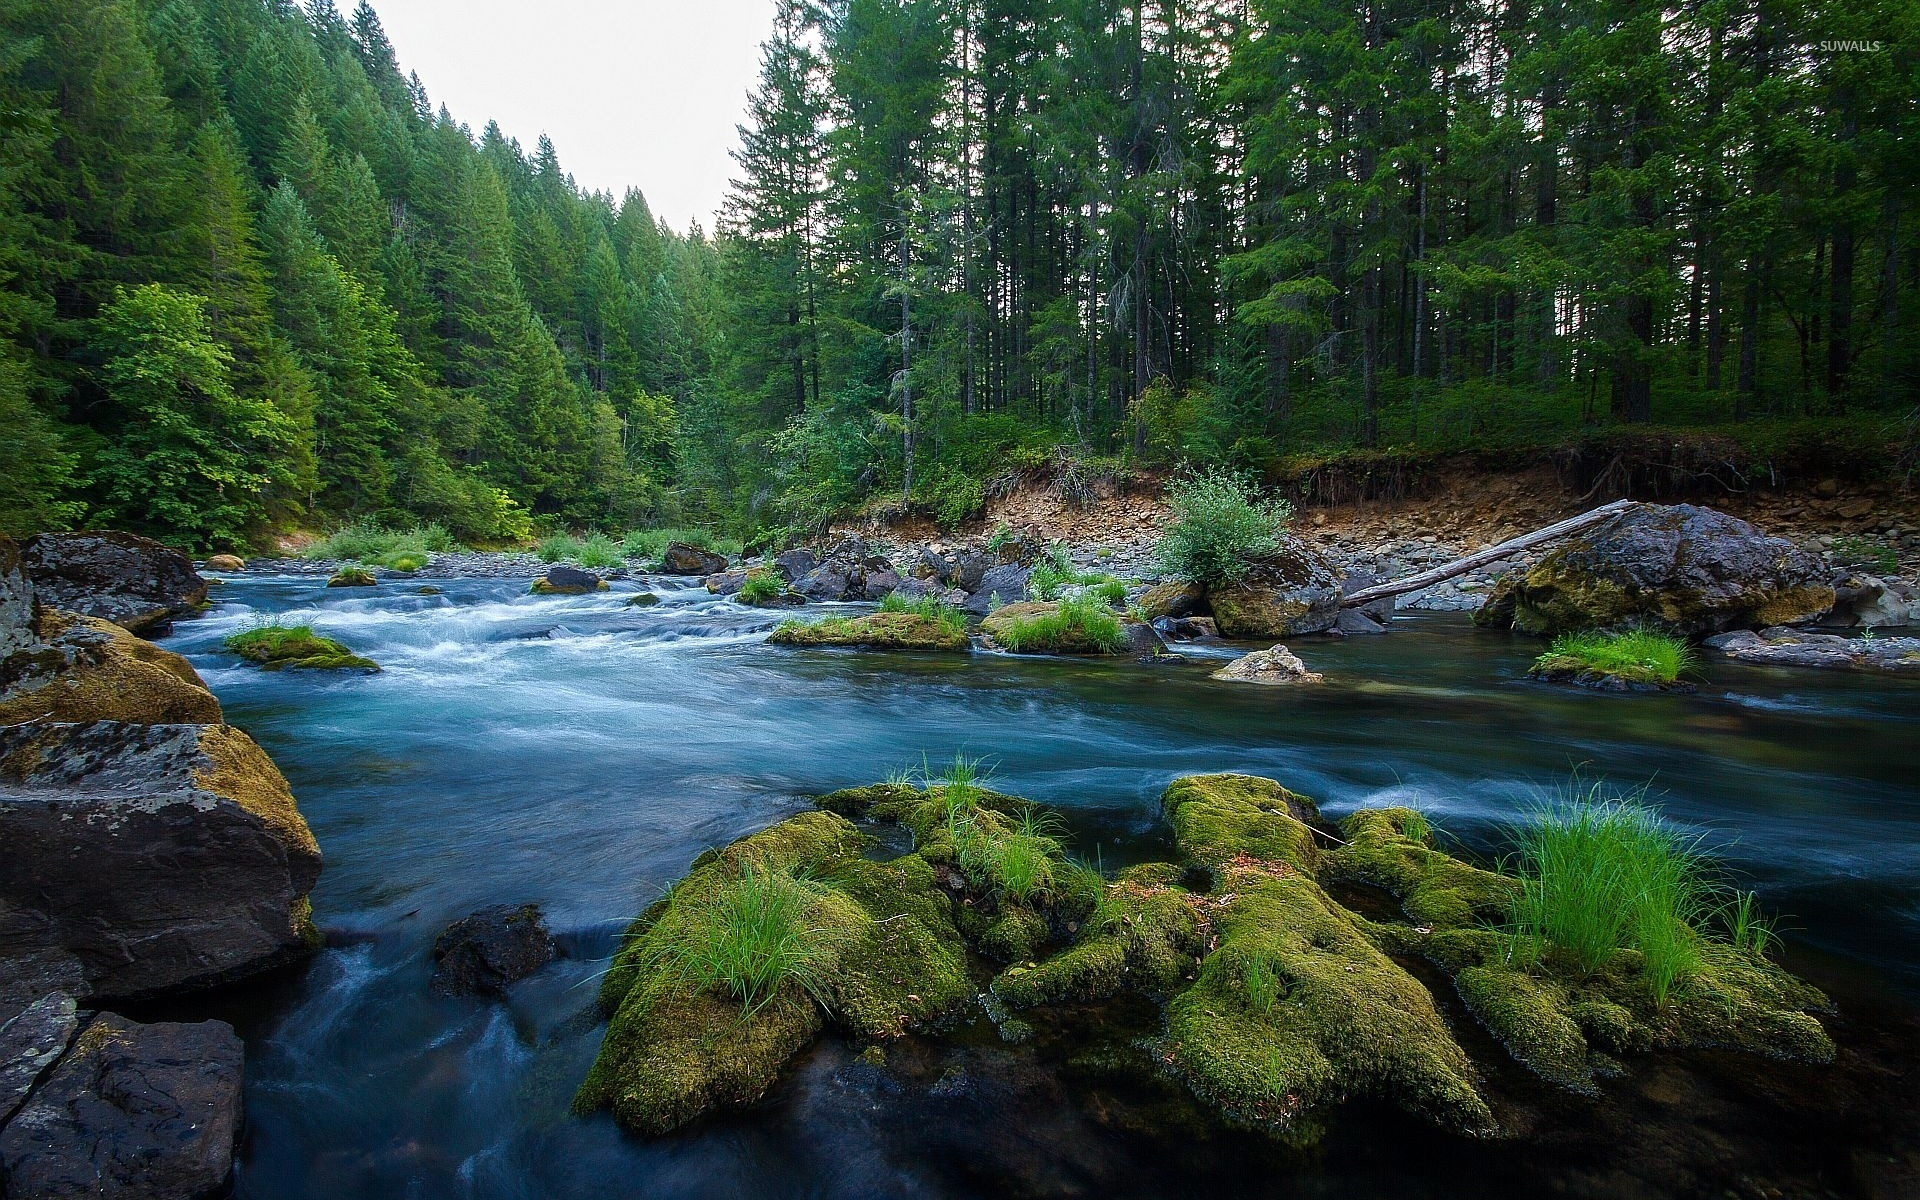 Forest River 2 Wallpaper Nature Wallpapers 46210